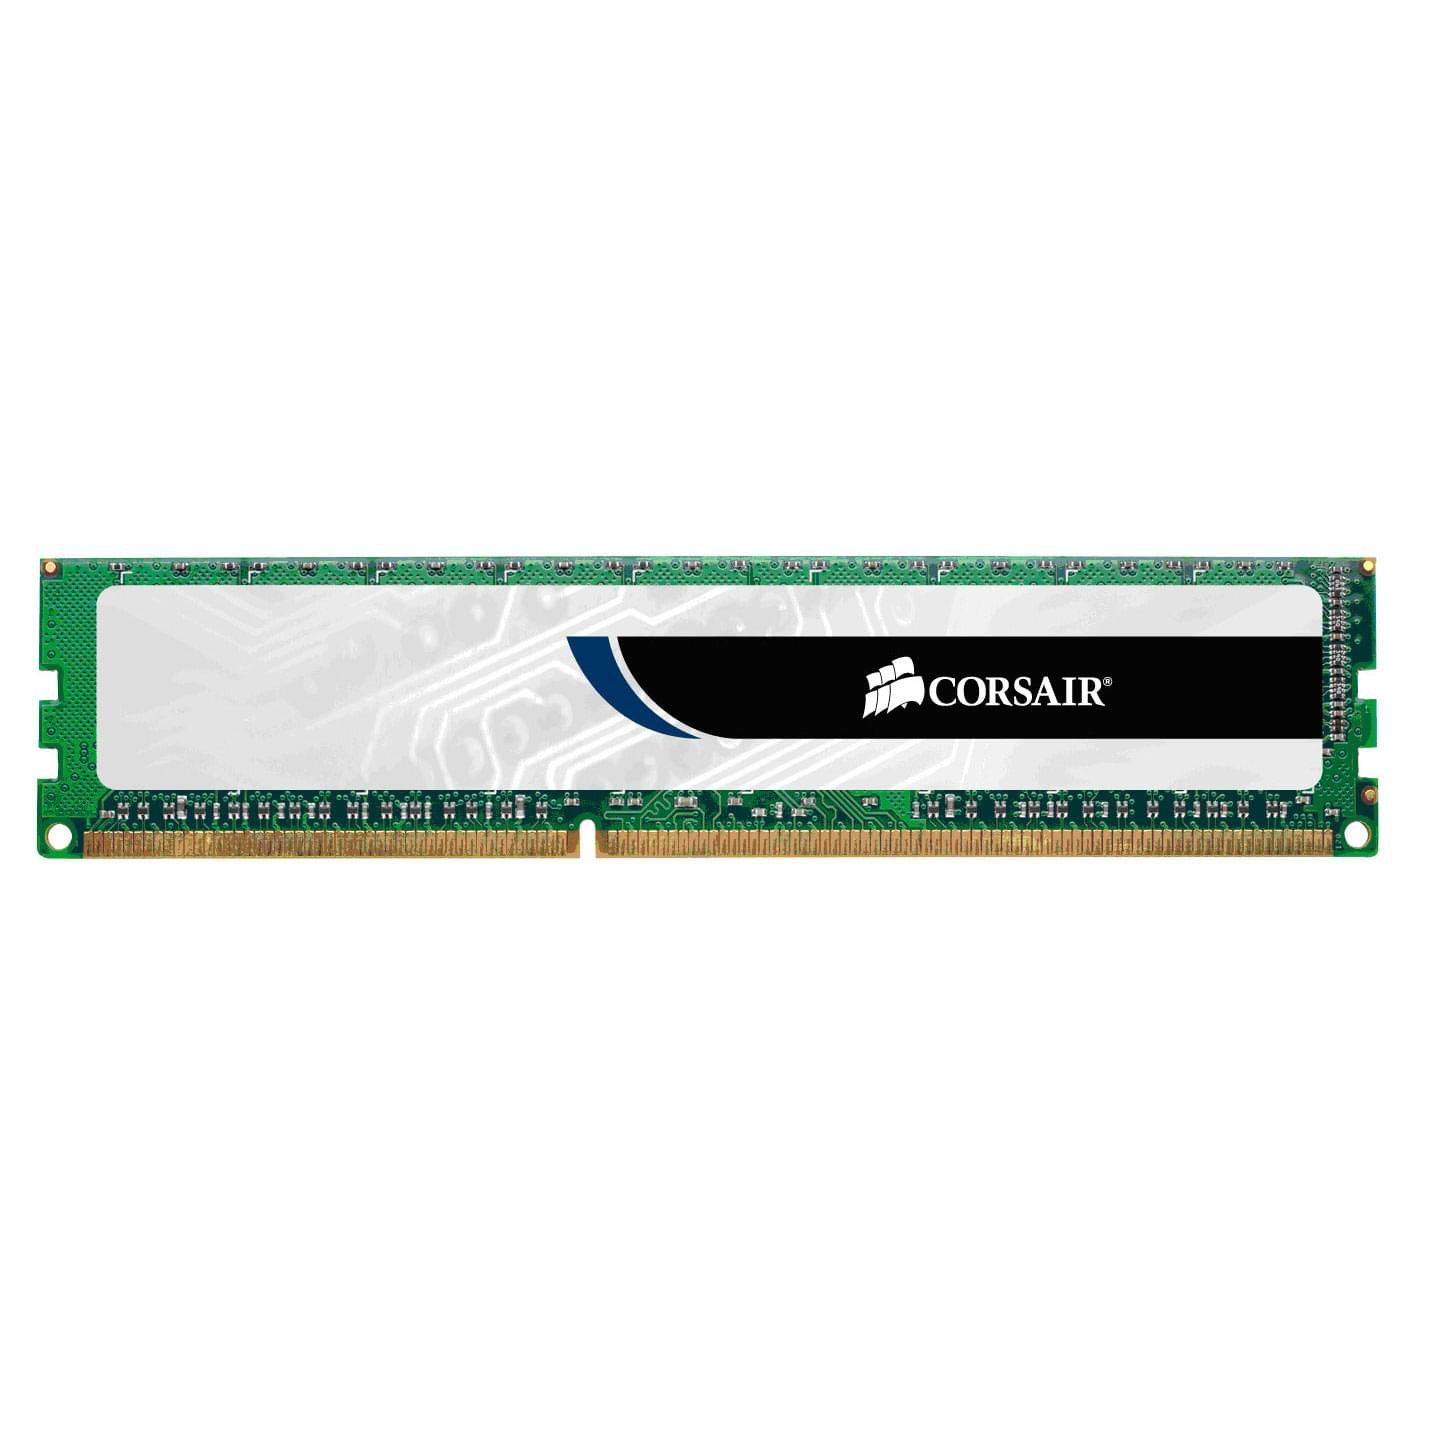 Corsair Value Select CMV4GX3M1A1333C9 (CMV4GX3M1A1333C9) - Achat / Vente Mémoire PC sur Cybertek.fr - 0